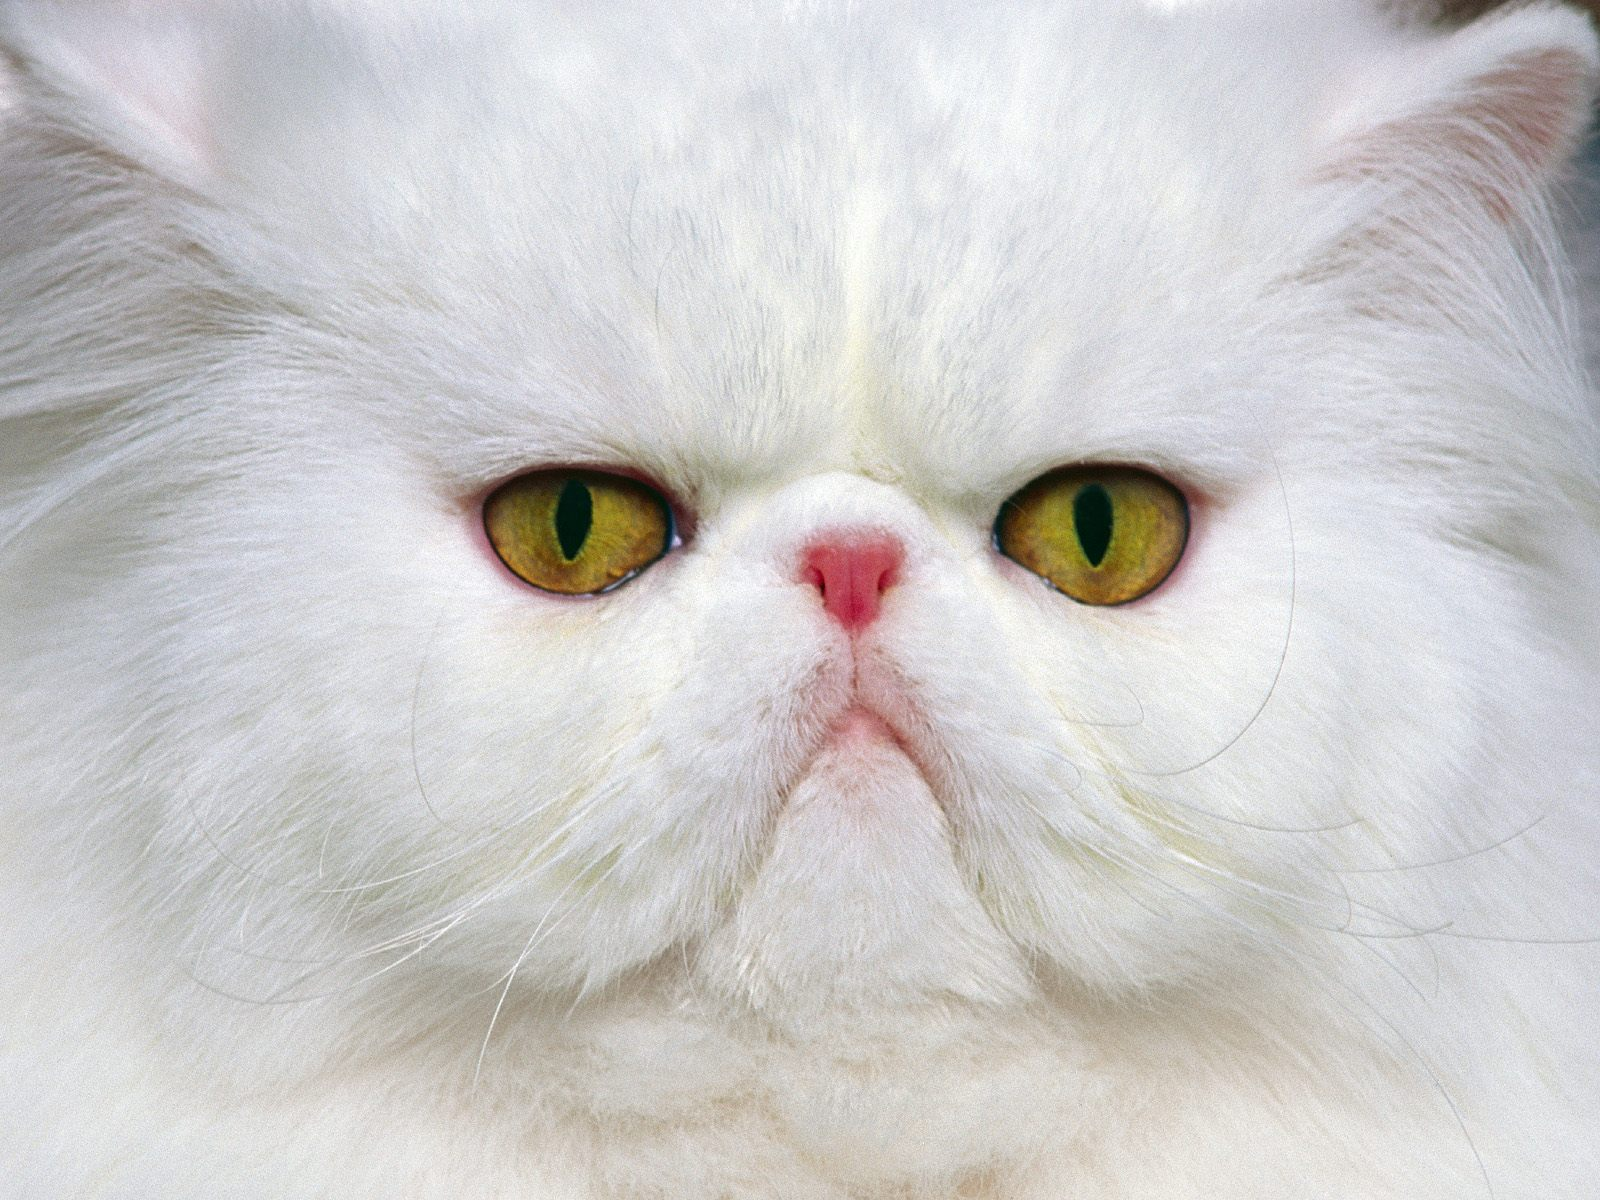 click to free download the wallpaper--Image of Funny Kitten, Crowded Face, Indifferent and Uncaring  1600X1200 free wallpaper download